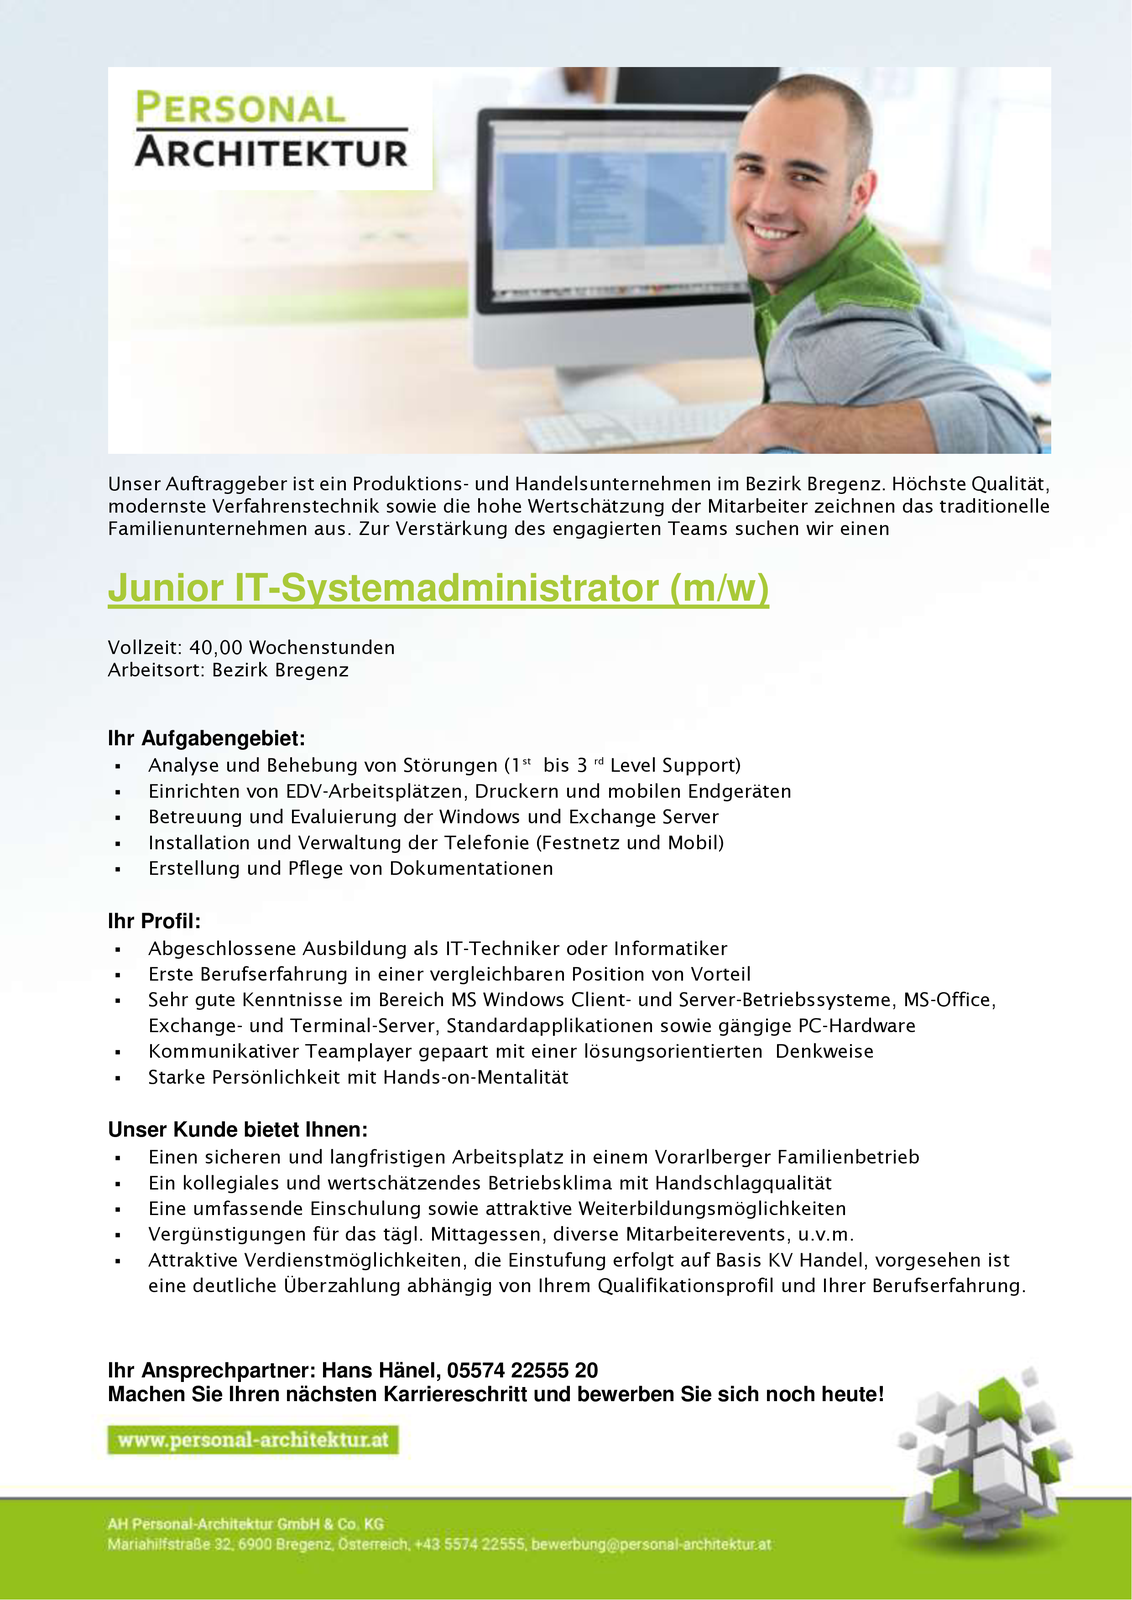 Junior IT-Systemadministrator m/w